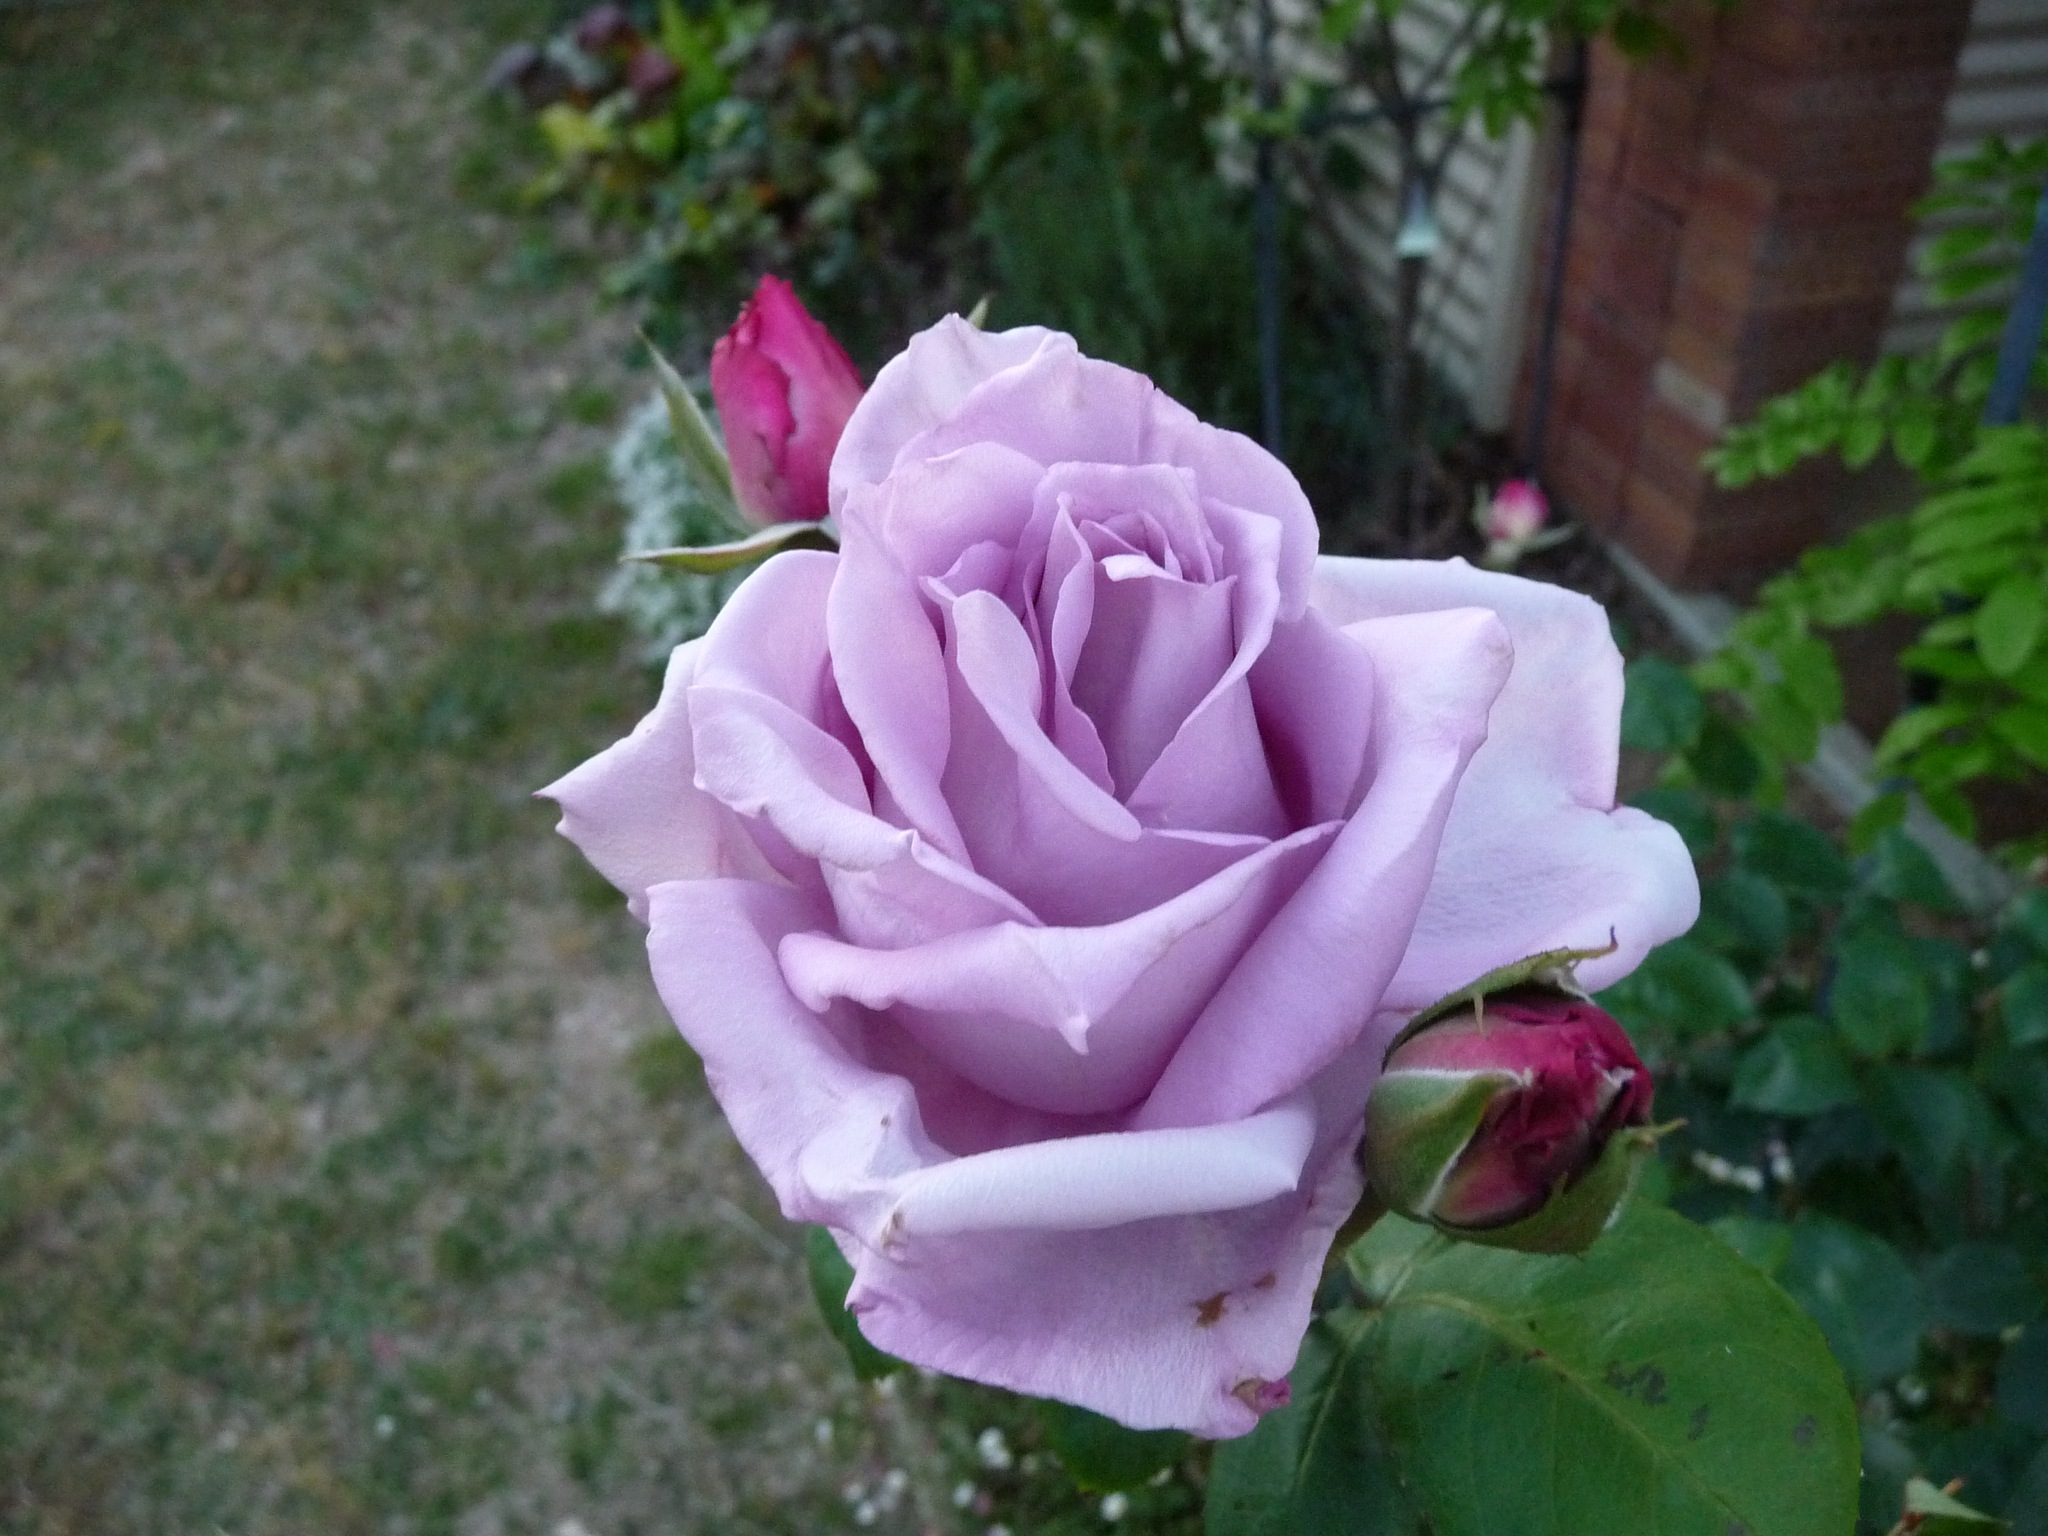 Rose Garden by Lucy E Richards